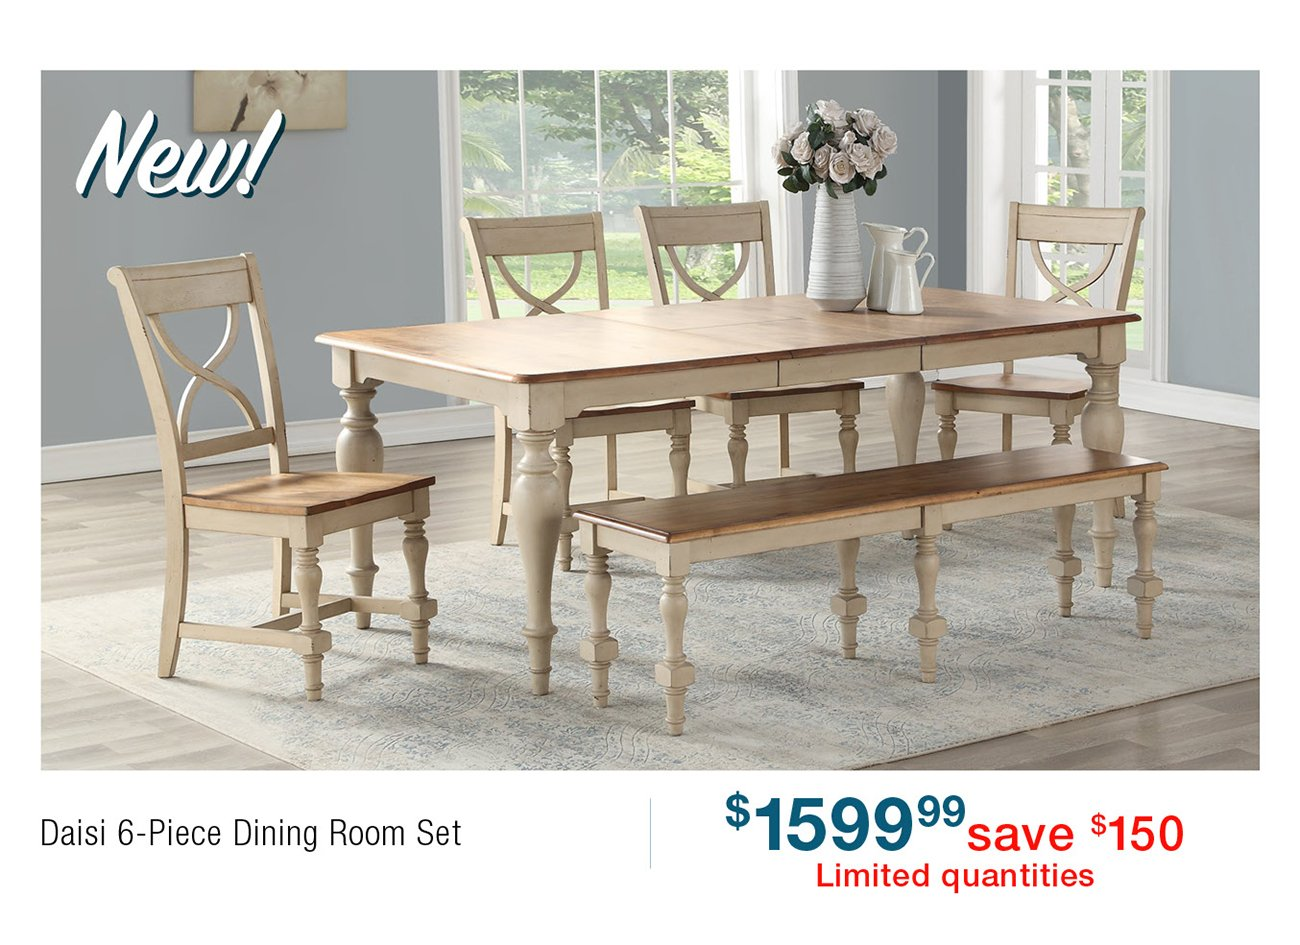 Daisi-dining-room-set